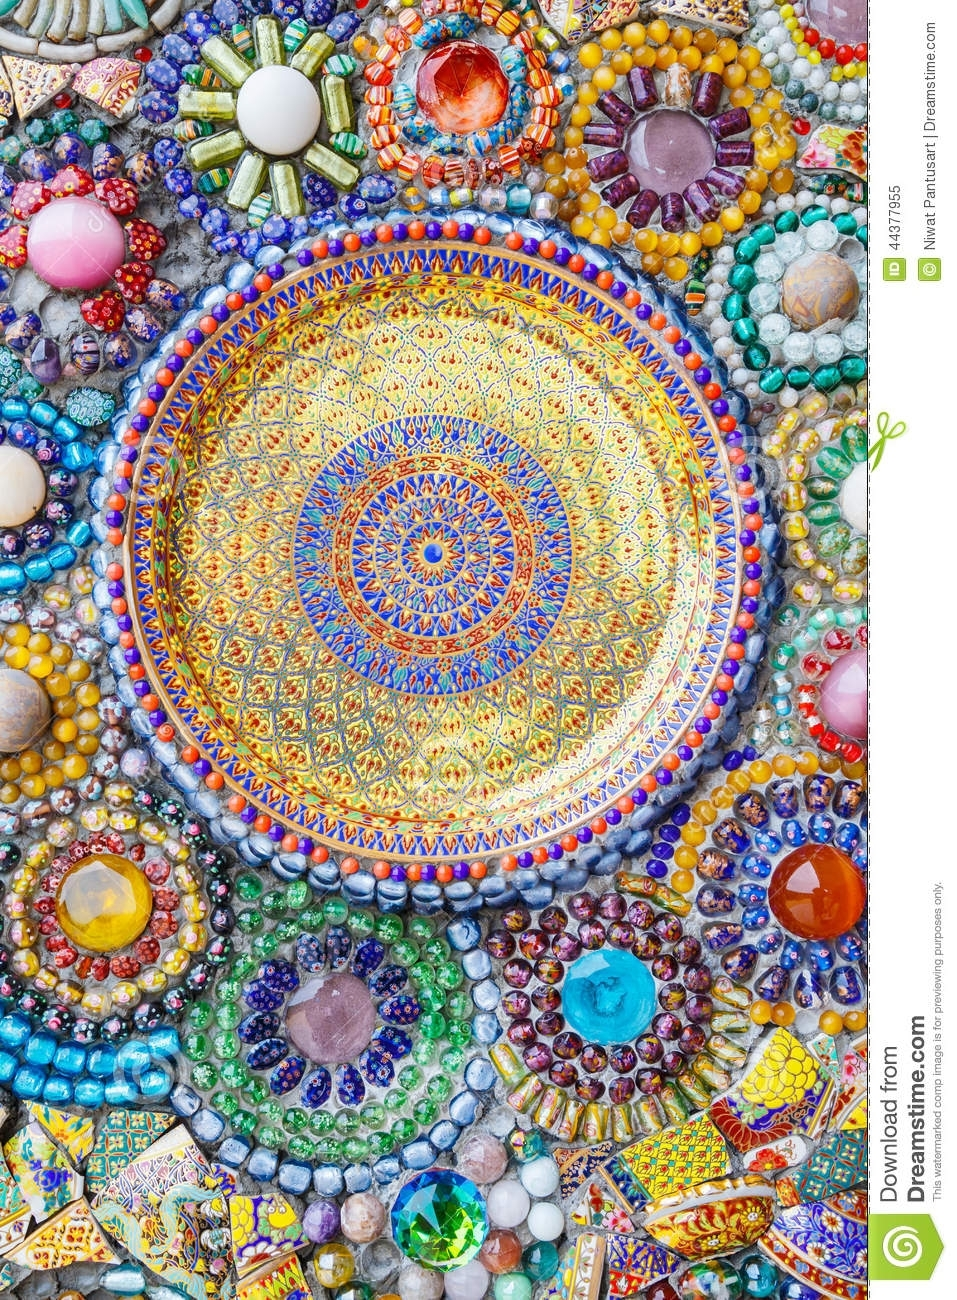 Colorful Mosaic Art Abstract Wall Background Stock Image – Image With Regard To Latest Abstract Mosaic Art On Wall (View 13 of 20)